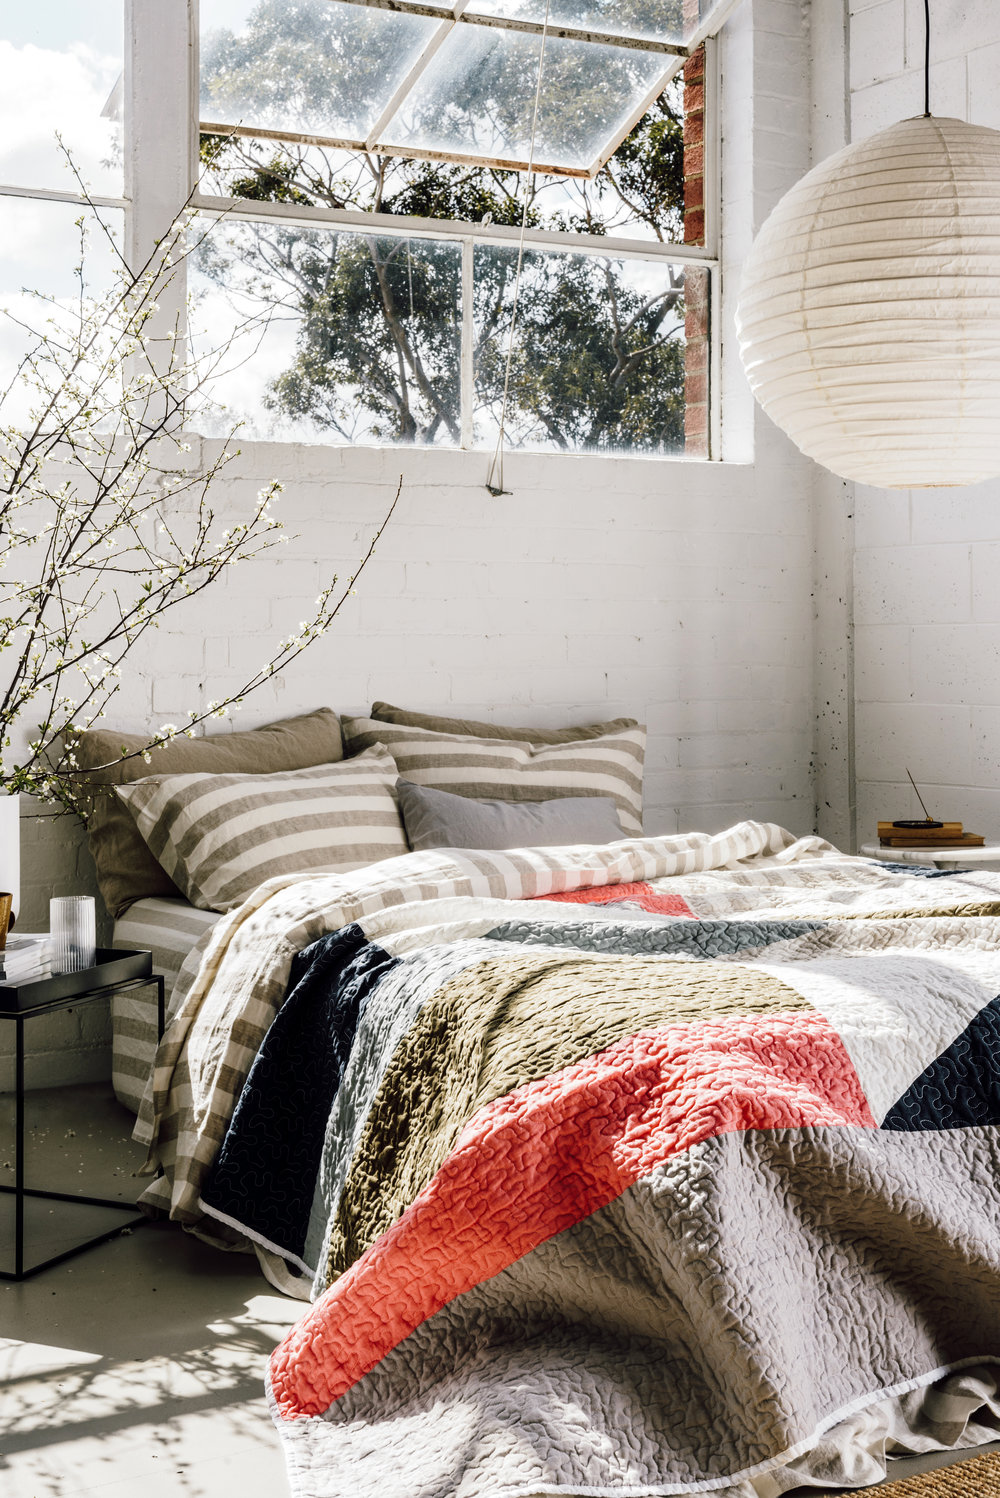 The  Maryanne Moodie x I Love Linen  collaboration - local weaver Maryanne Moodie has teamed up with  I Love Linen  to create a limited edition art quilt in French linen. Photo by Lauren Bamford, styling by Stephanie Stematis.